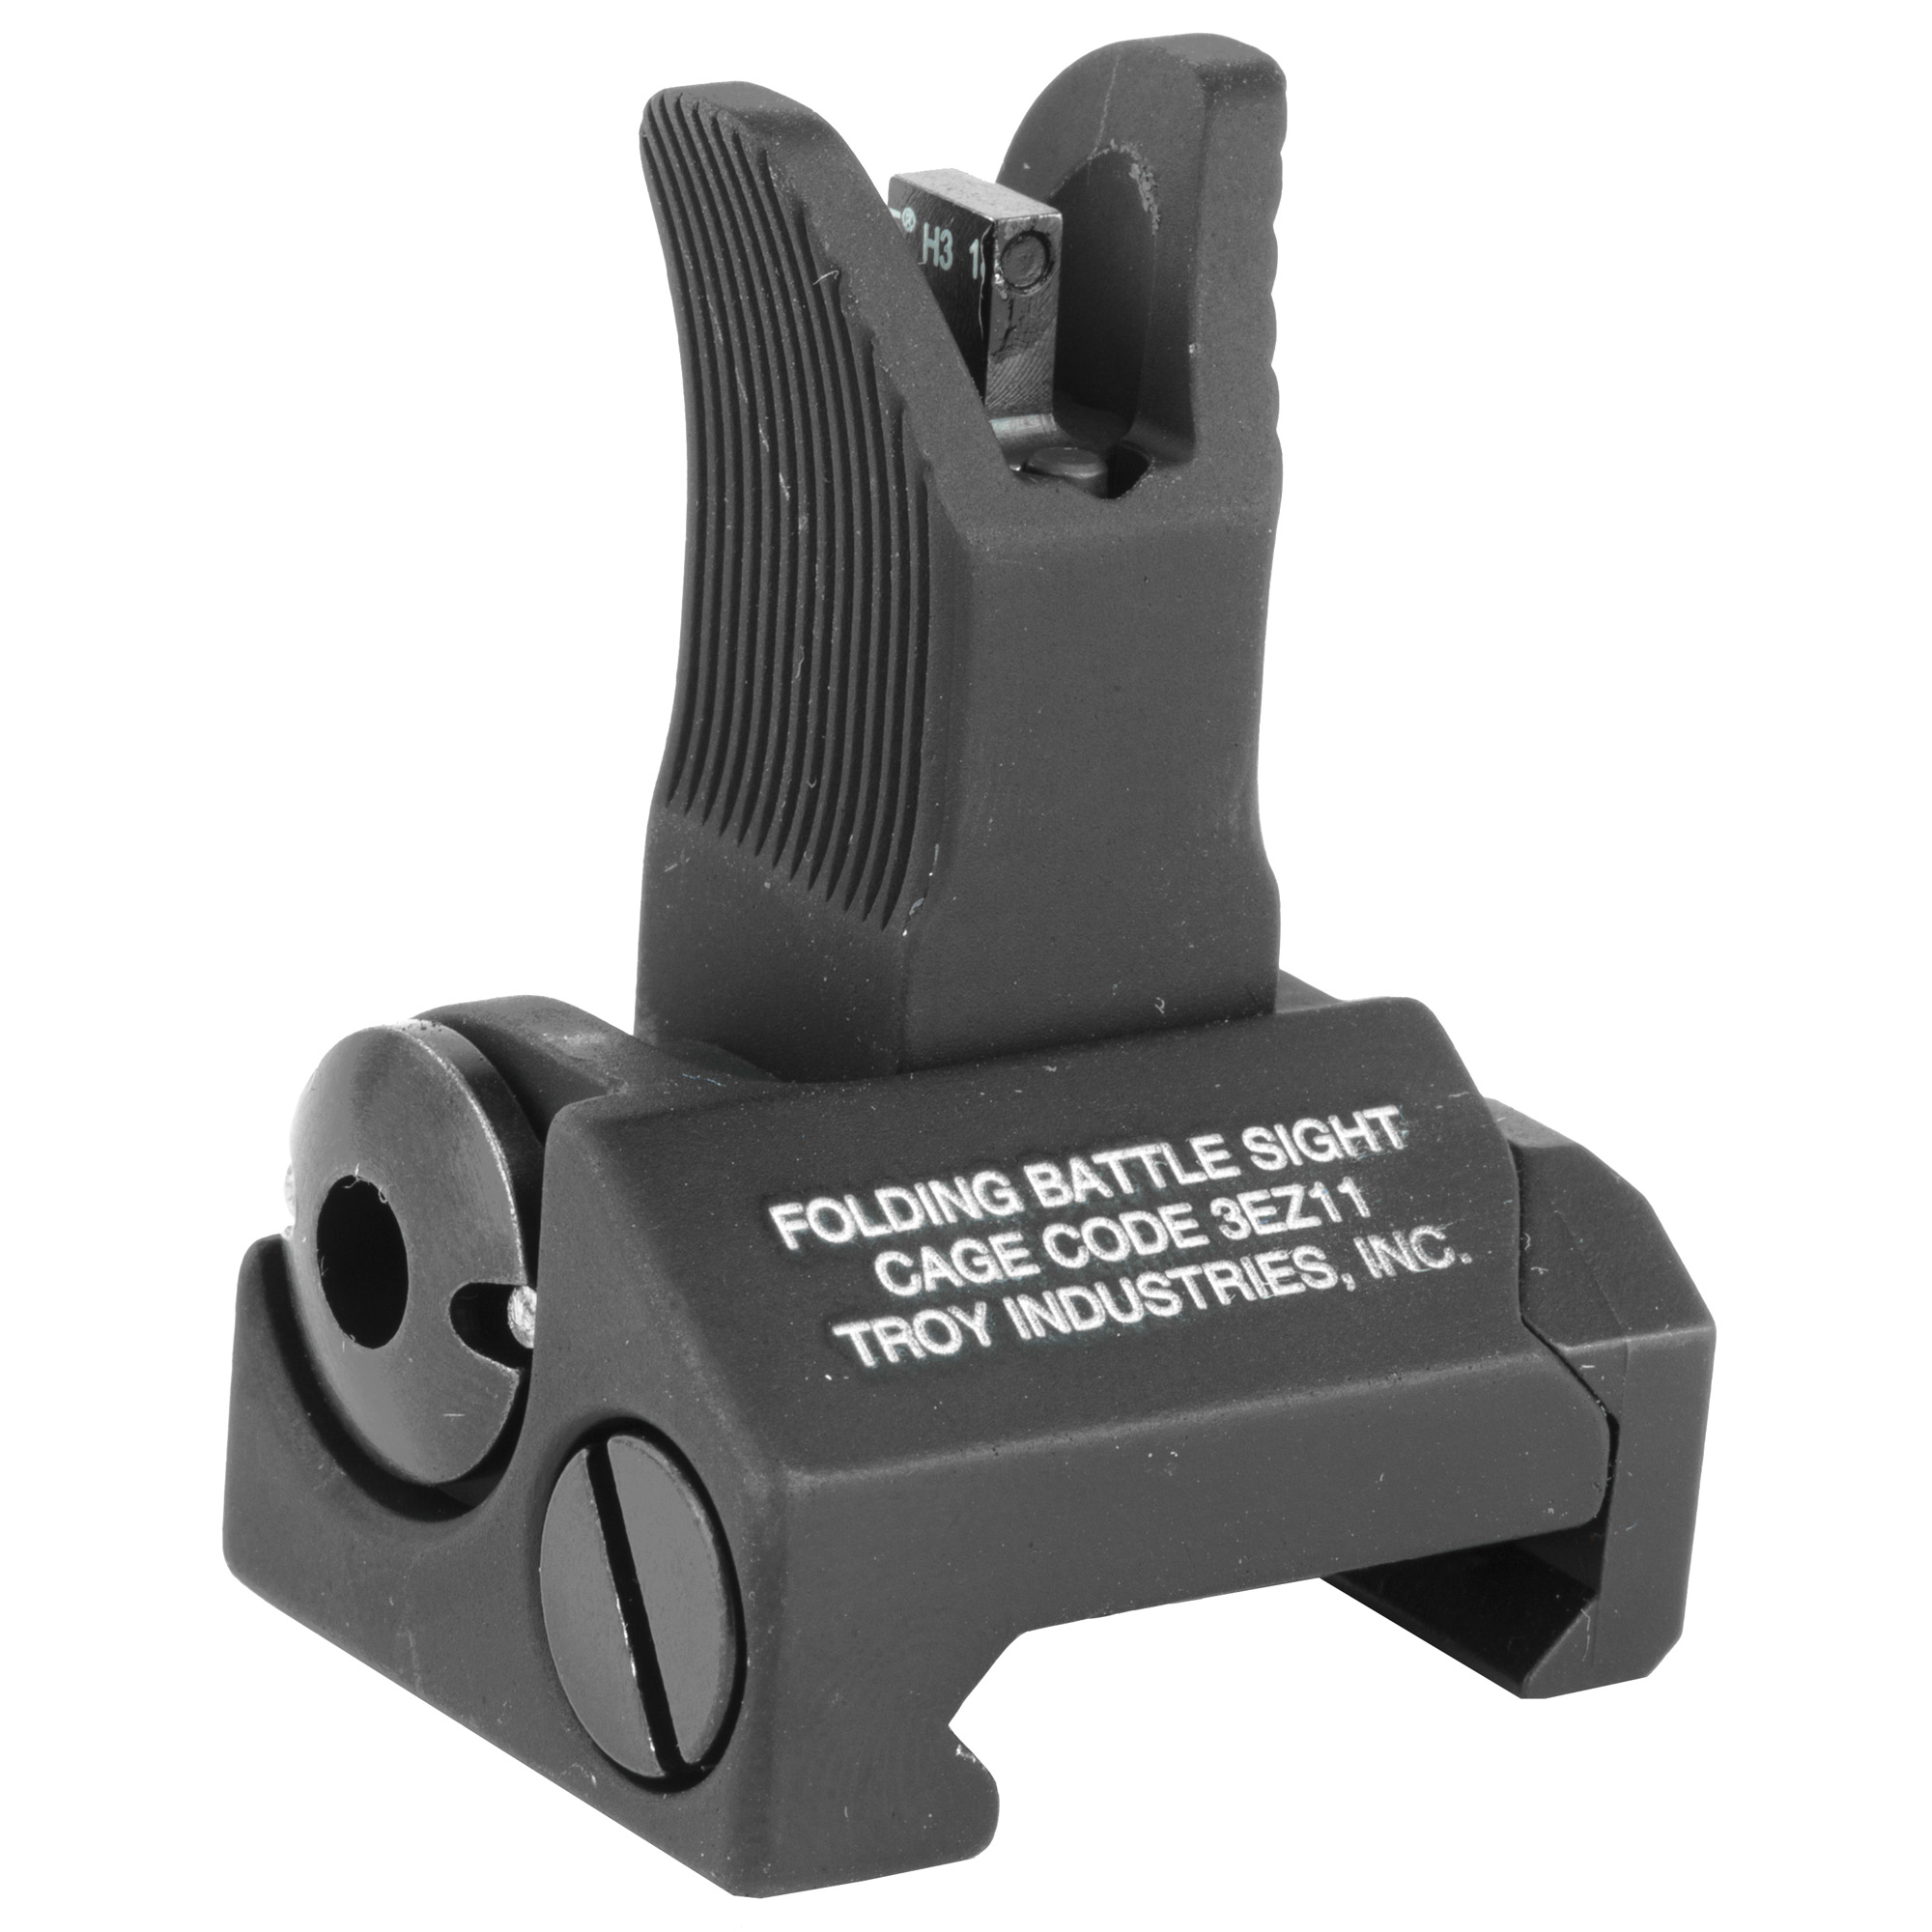 """Troy Industries' Tritium BattleSights(TM) are designed to eliminate the poor sight orientation that is typical in twilight. Tritium is a form of hydrogen that emits a continuous light source when batteries or electricity are not available. The front post is centered between two Tritium points of reference to allow proper alignment. Durability and dead-on accuracy make Troy BattleSights the hands-down first choice of Special Ops and Tactical Users Worldwide. Troy's M4 Front Folding BattleSight is easy to install and deploy"""" with no levers or springs to fumble with. No tools required for adjustment."""